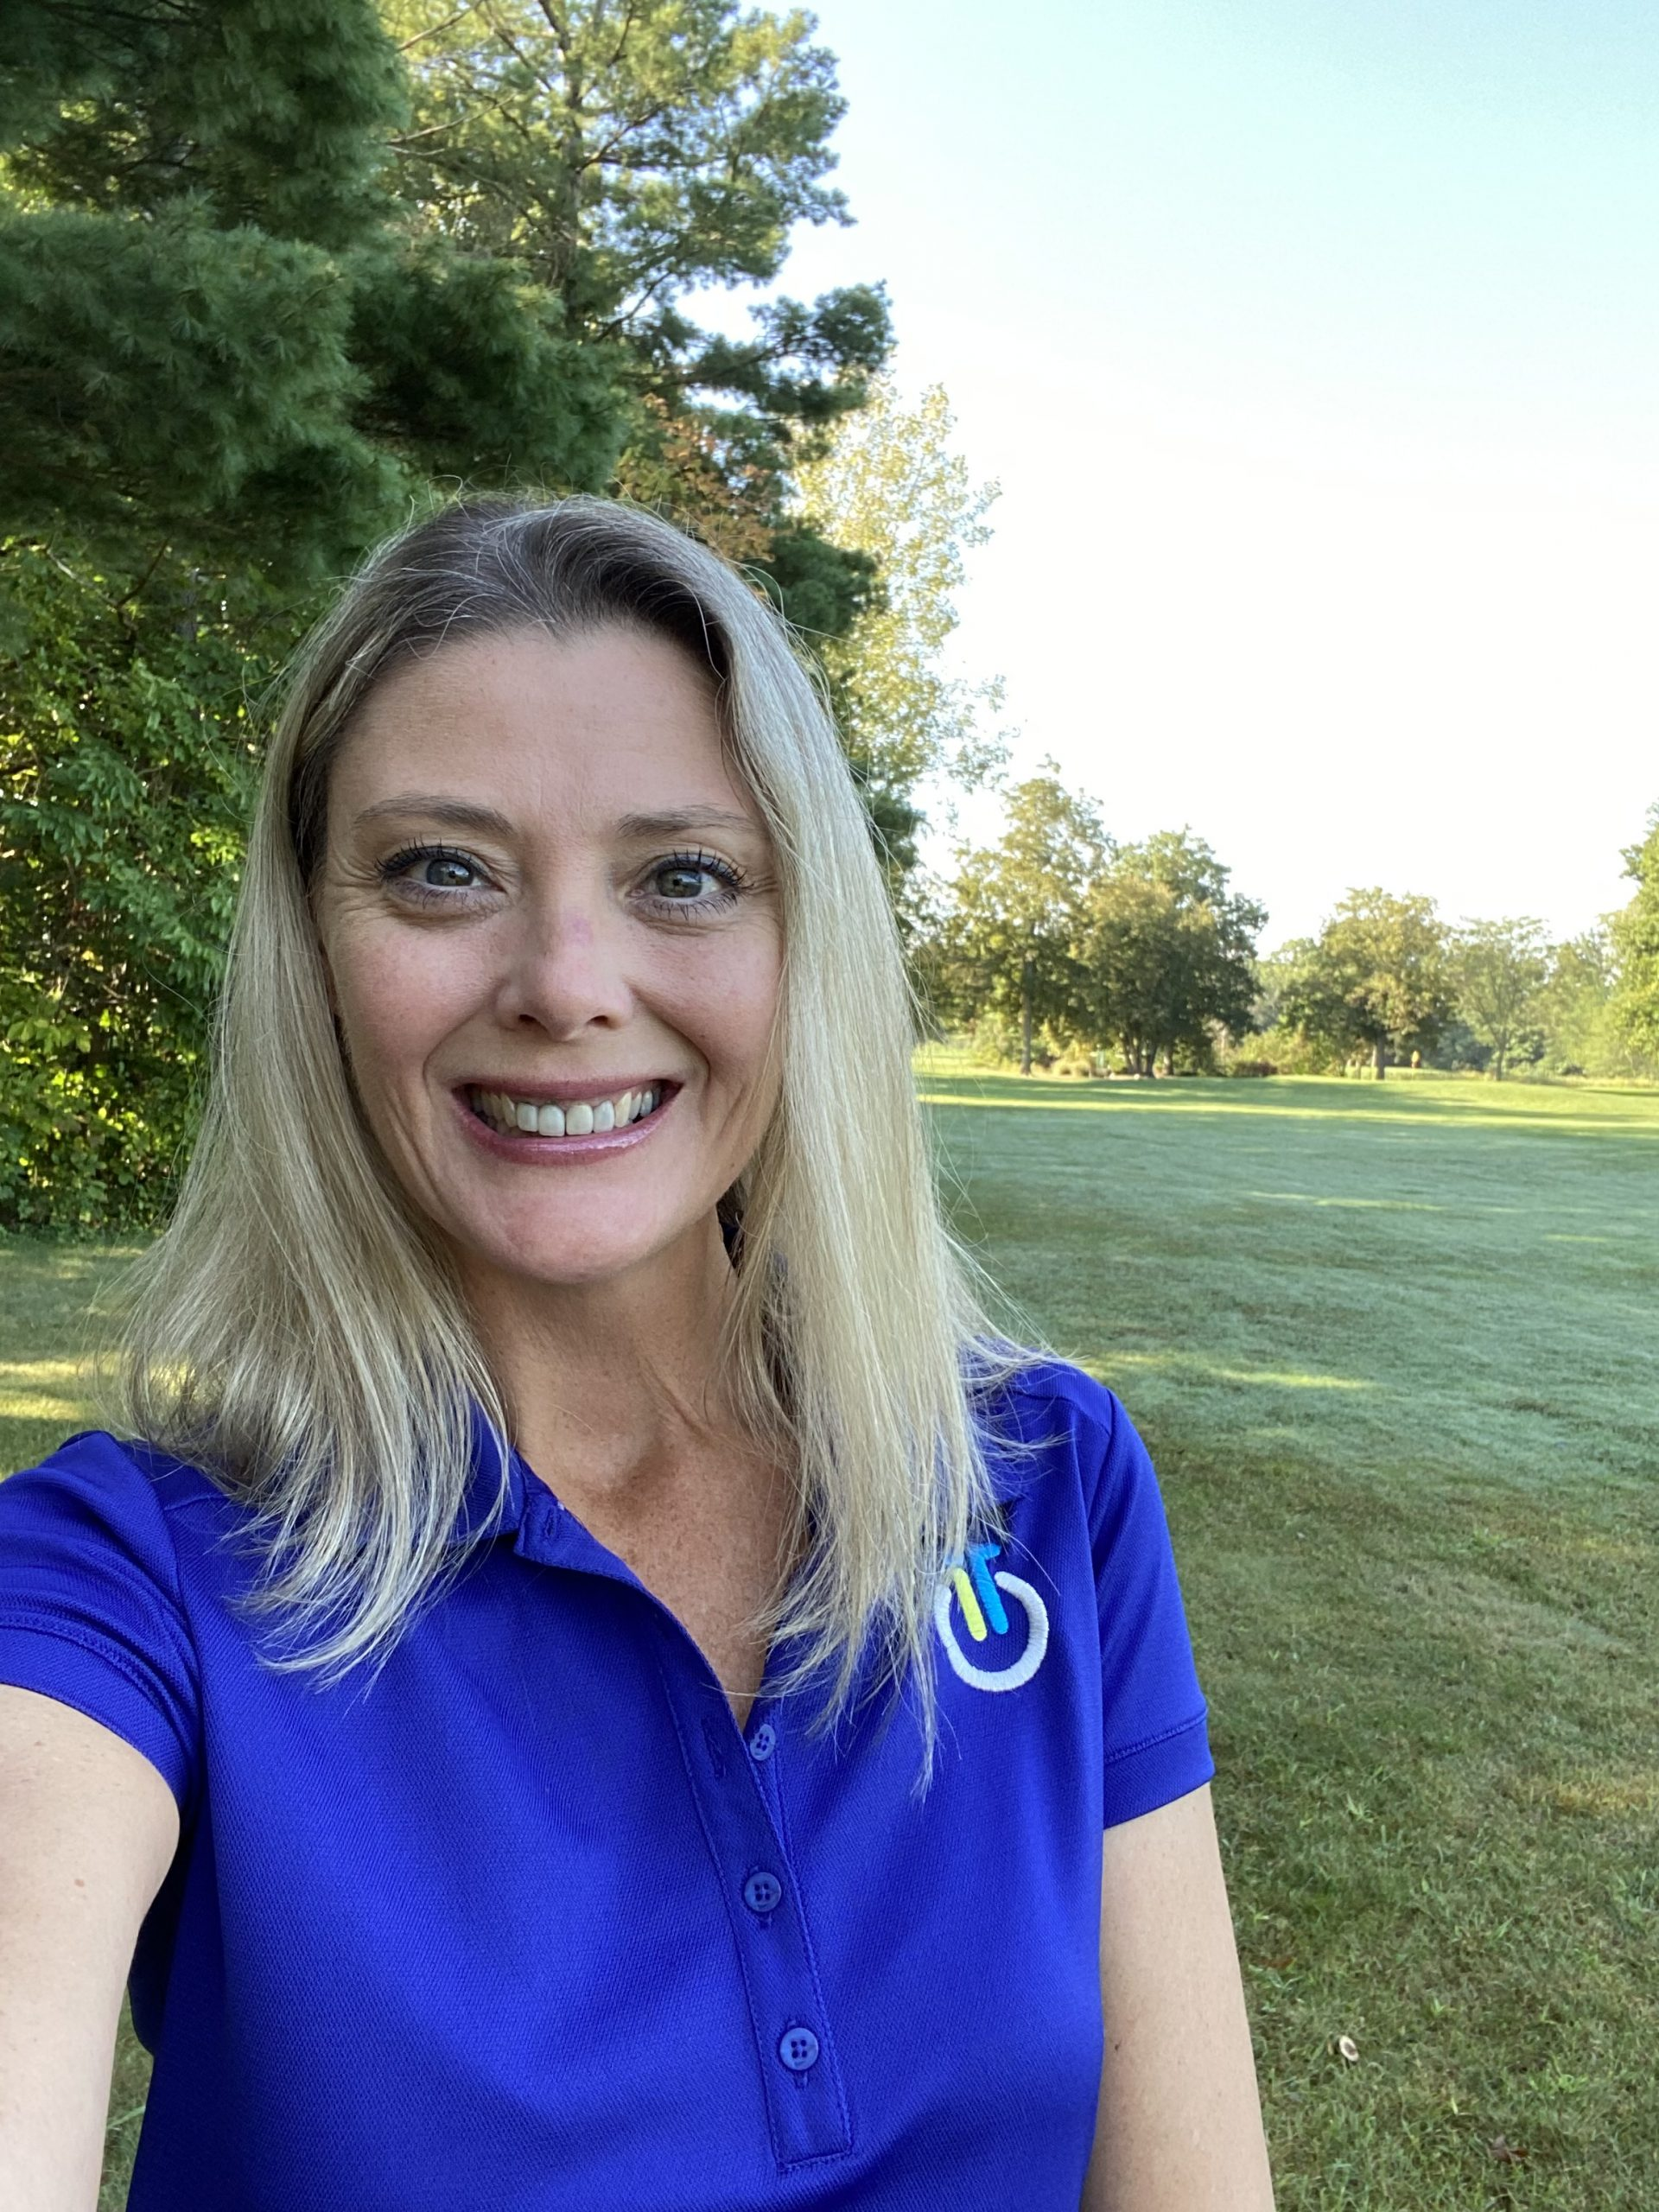 It was a beautiful, but bittersweet day at Springvale Golf Course for the 2021 North Olmsted Chamber of Commerce golf outing. This Brand Ambassador represented IT Support Specialists Berea and connected with golfers for the last scheduled golf outing of the season. Looking forward to 2022!